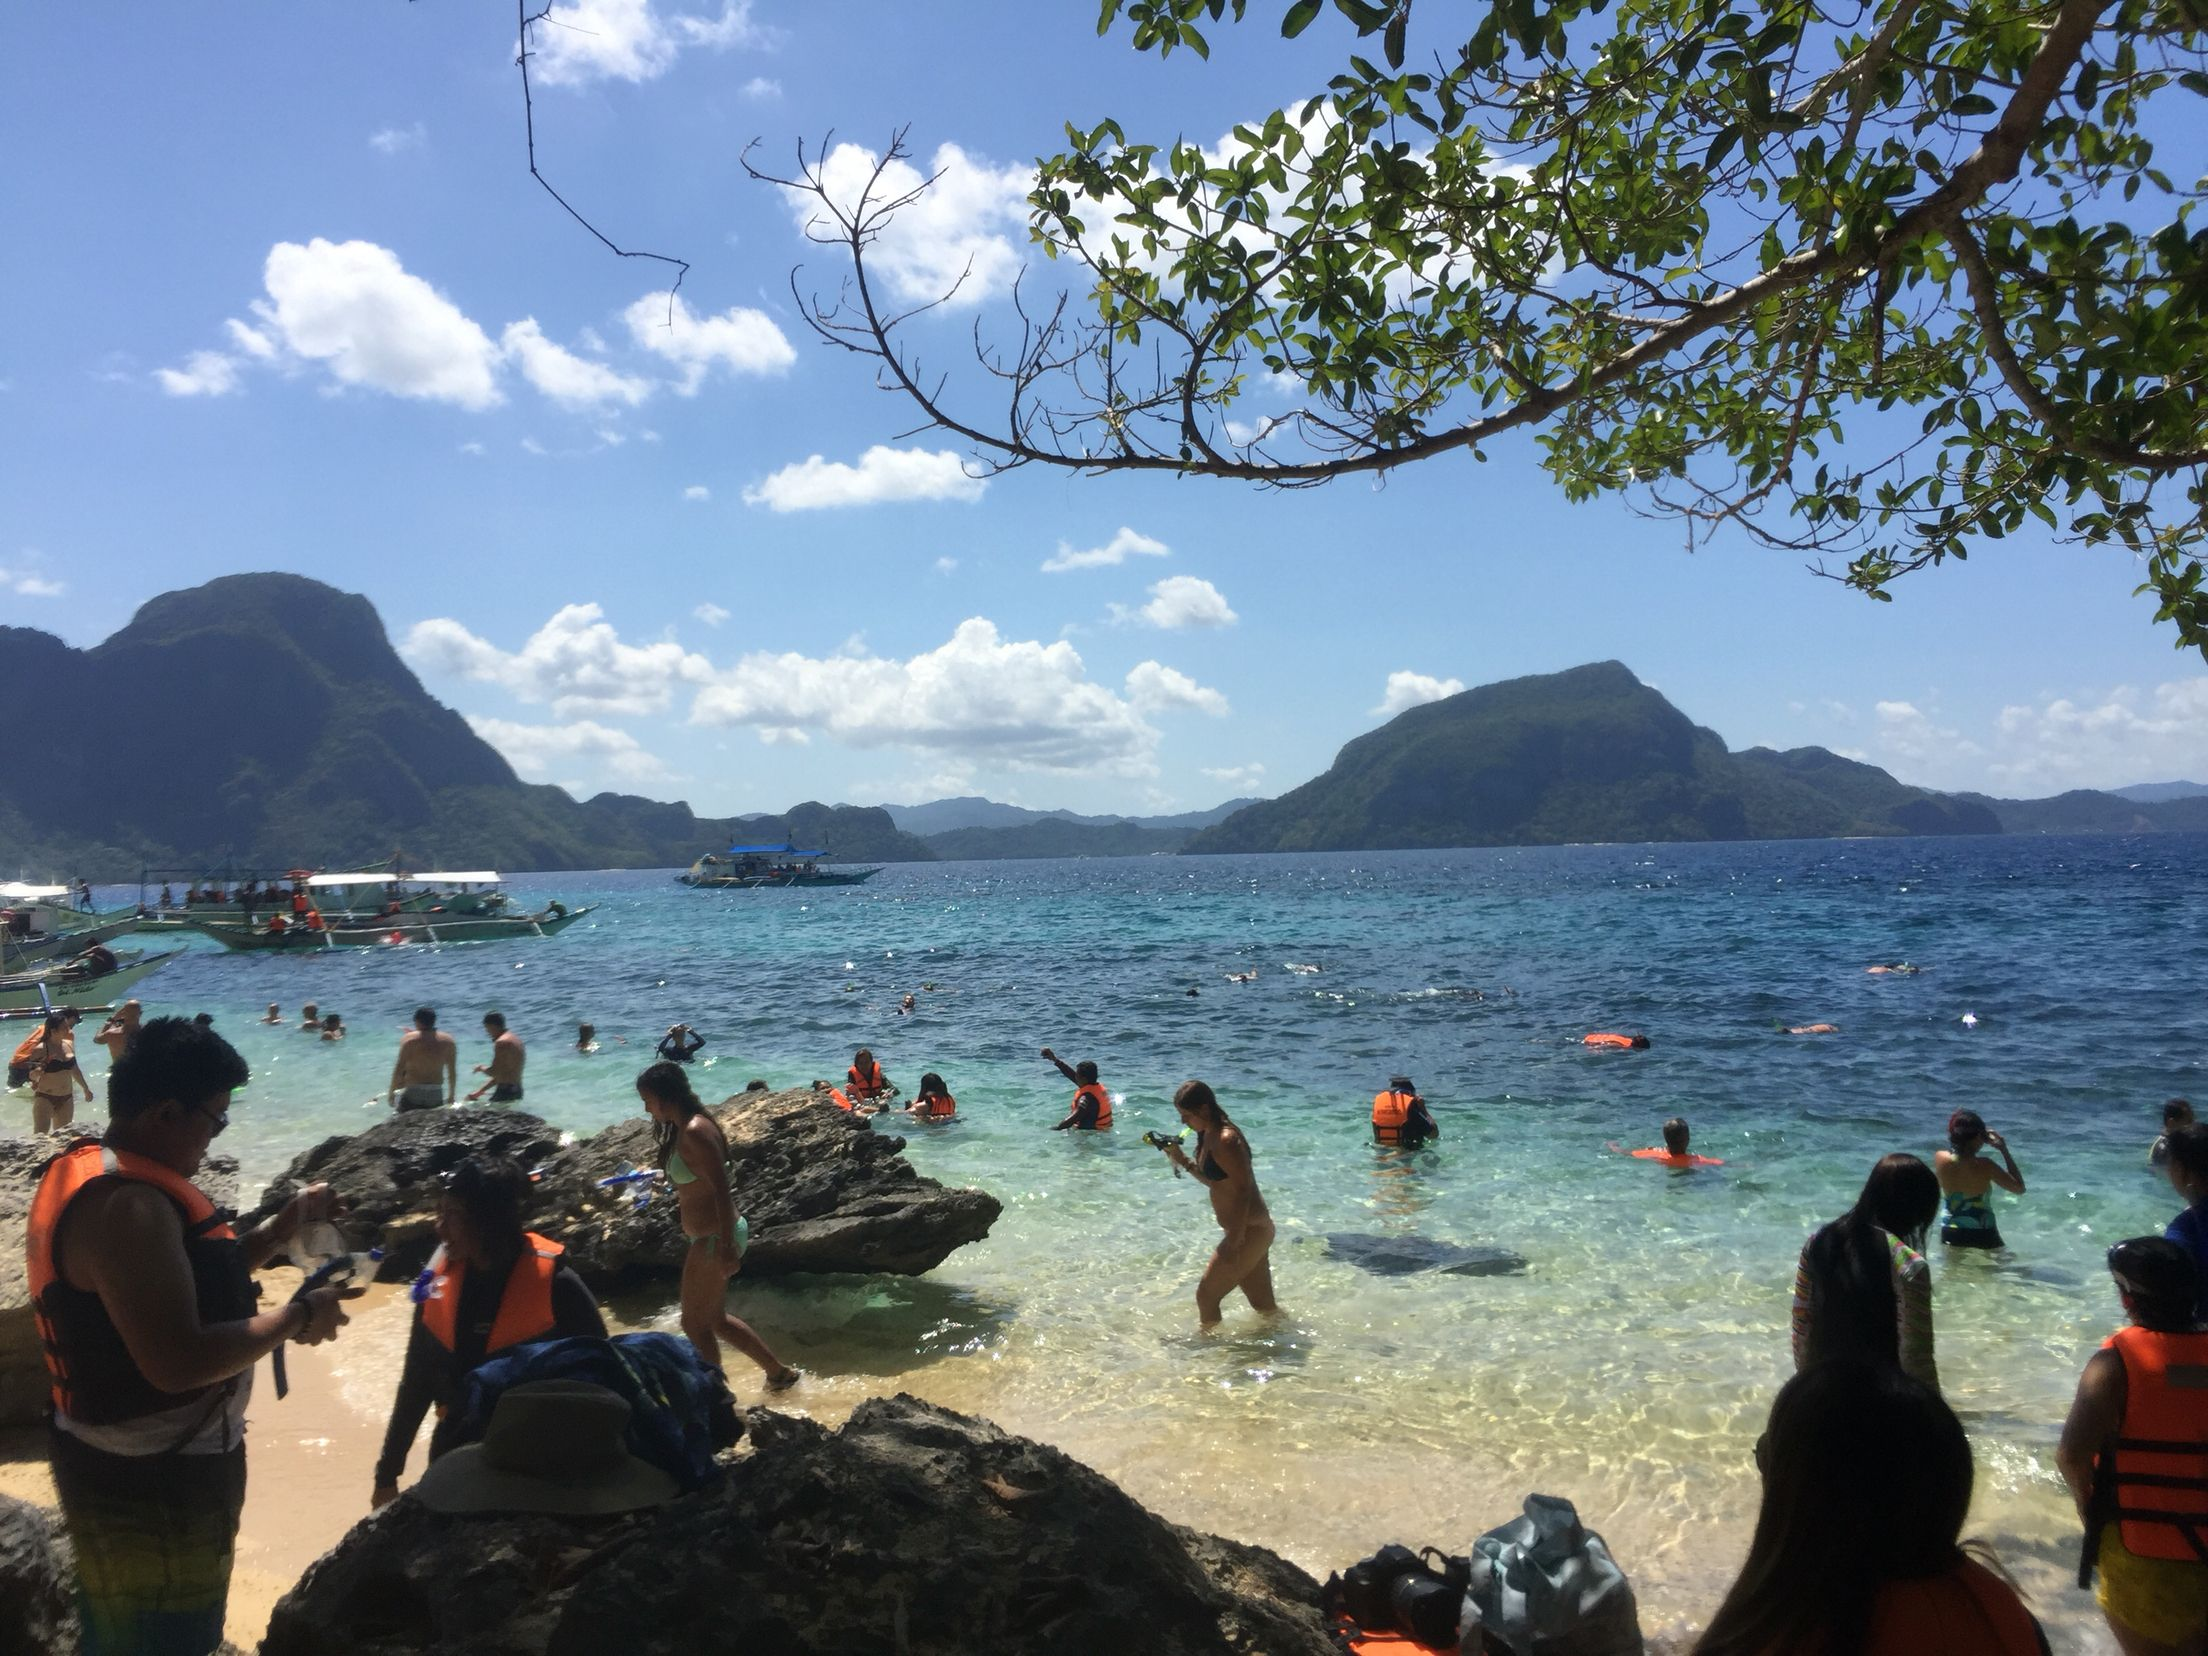 One of the islands of El Nido, Palawan, Philippines